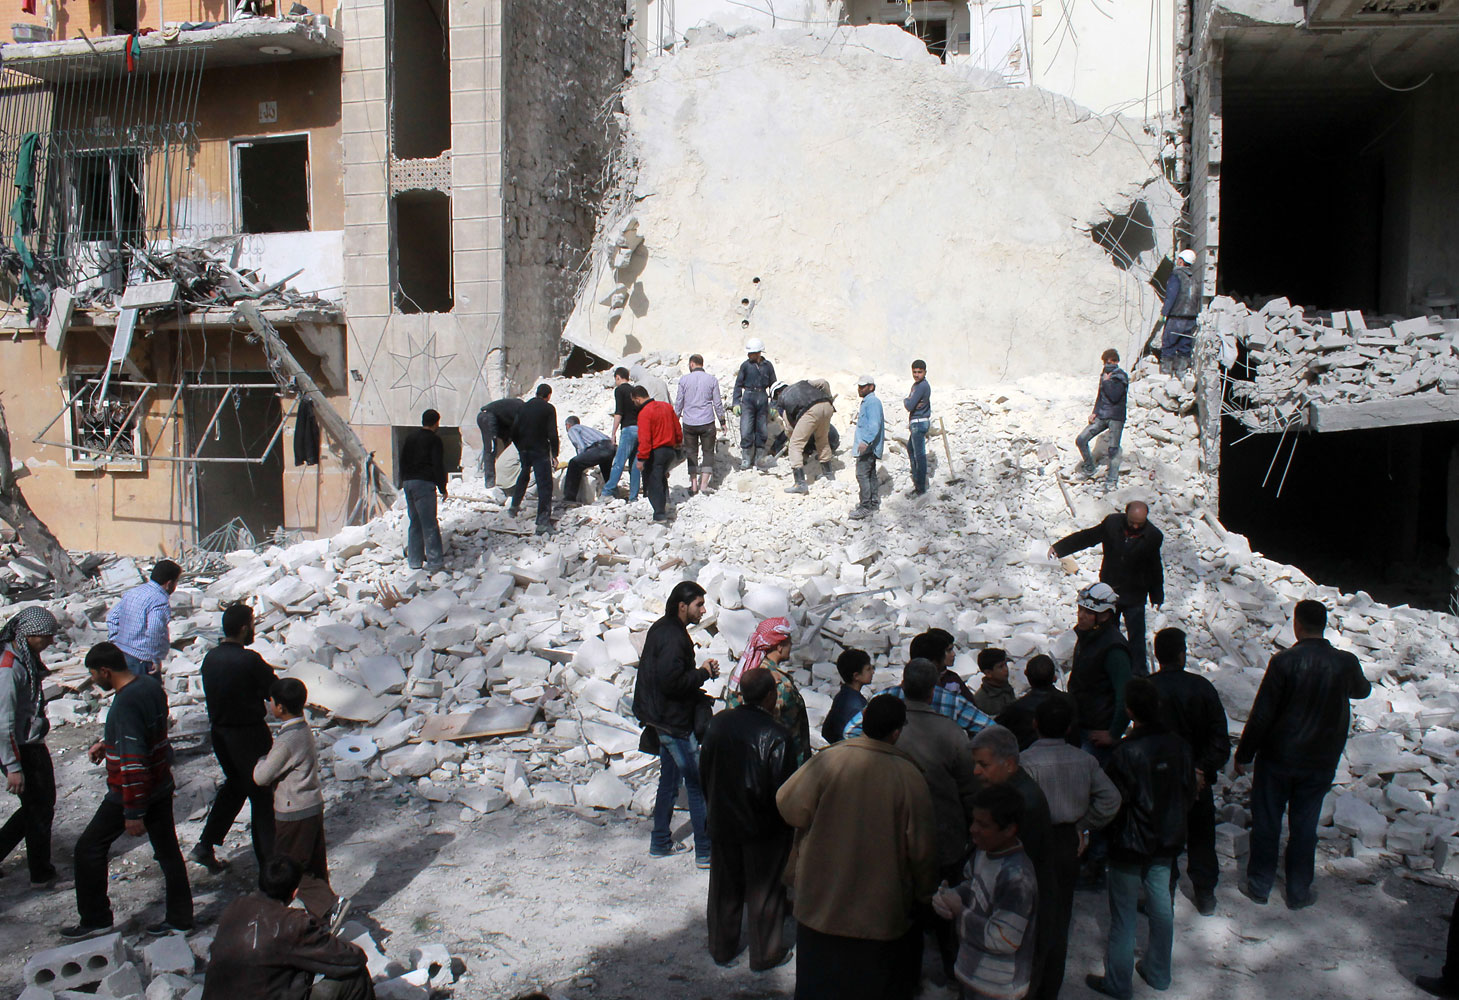 Syrians look at the destruction following an airstrike by government forces on the northern Syrian city of Aleppo on March 5, 2014.